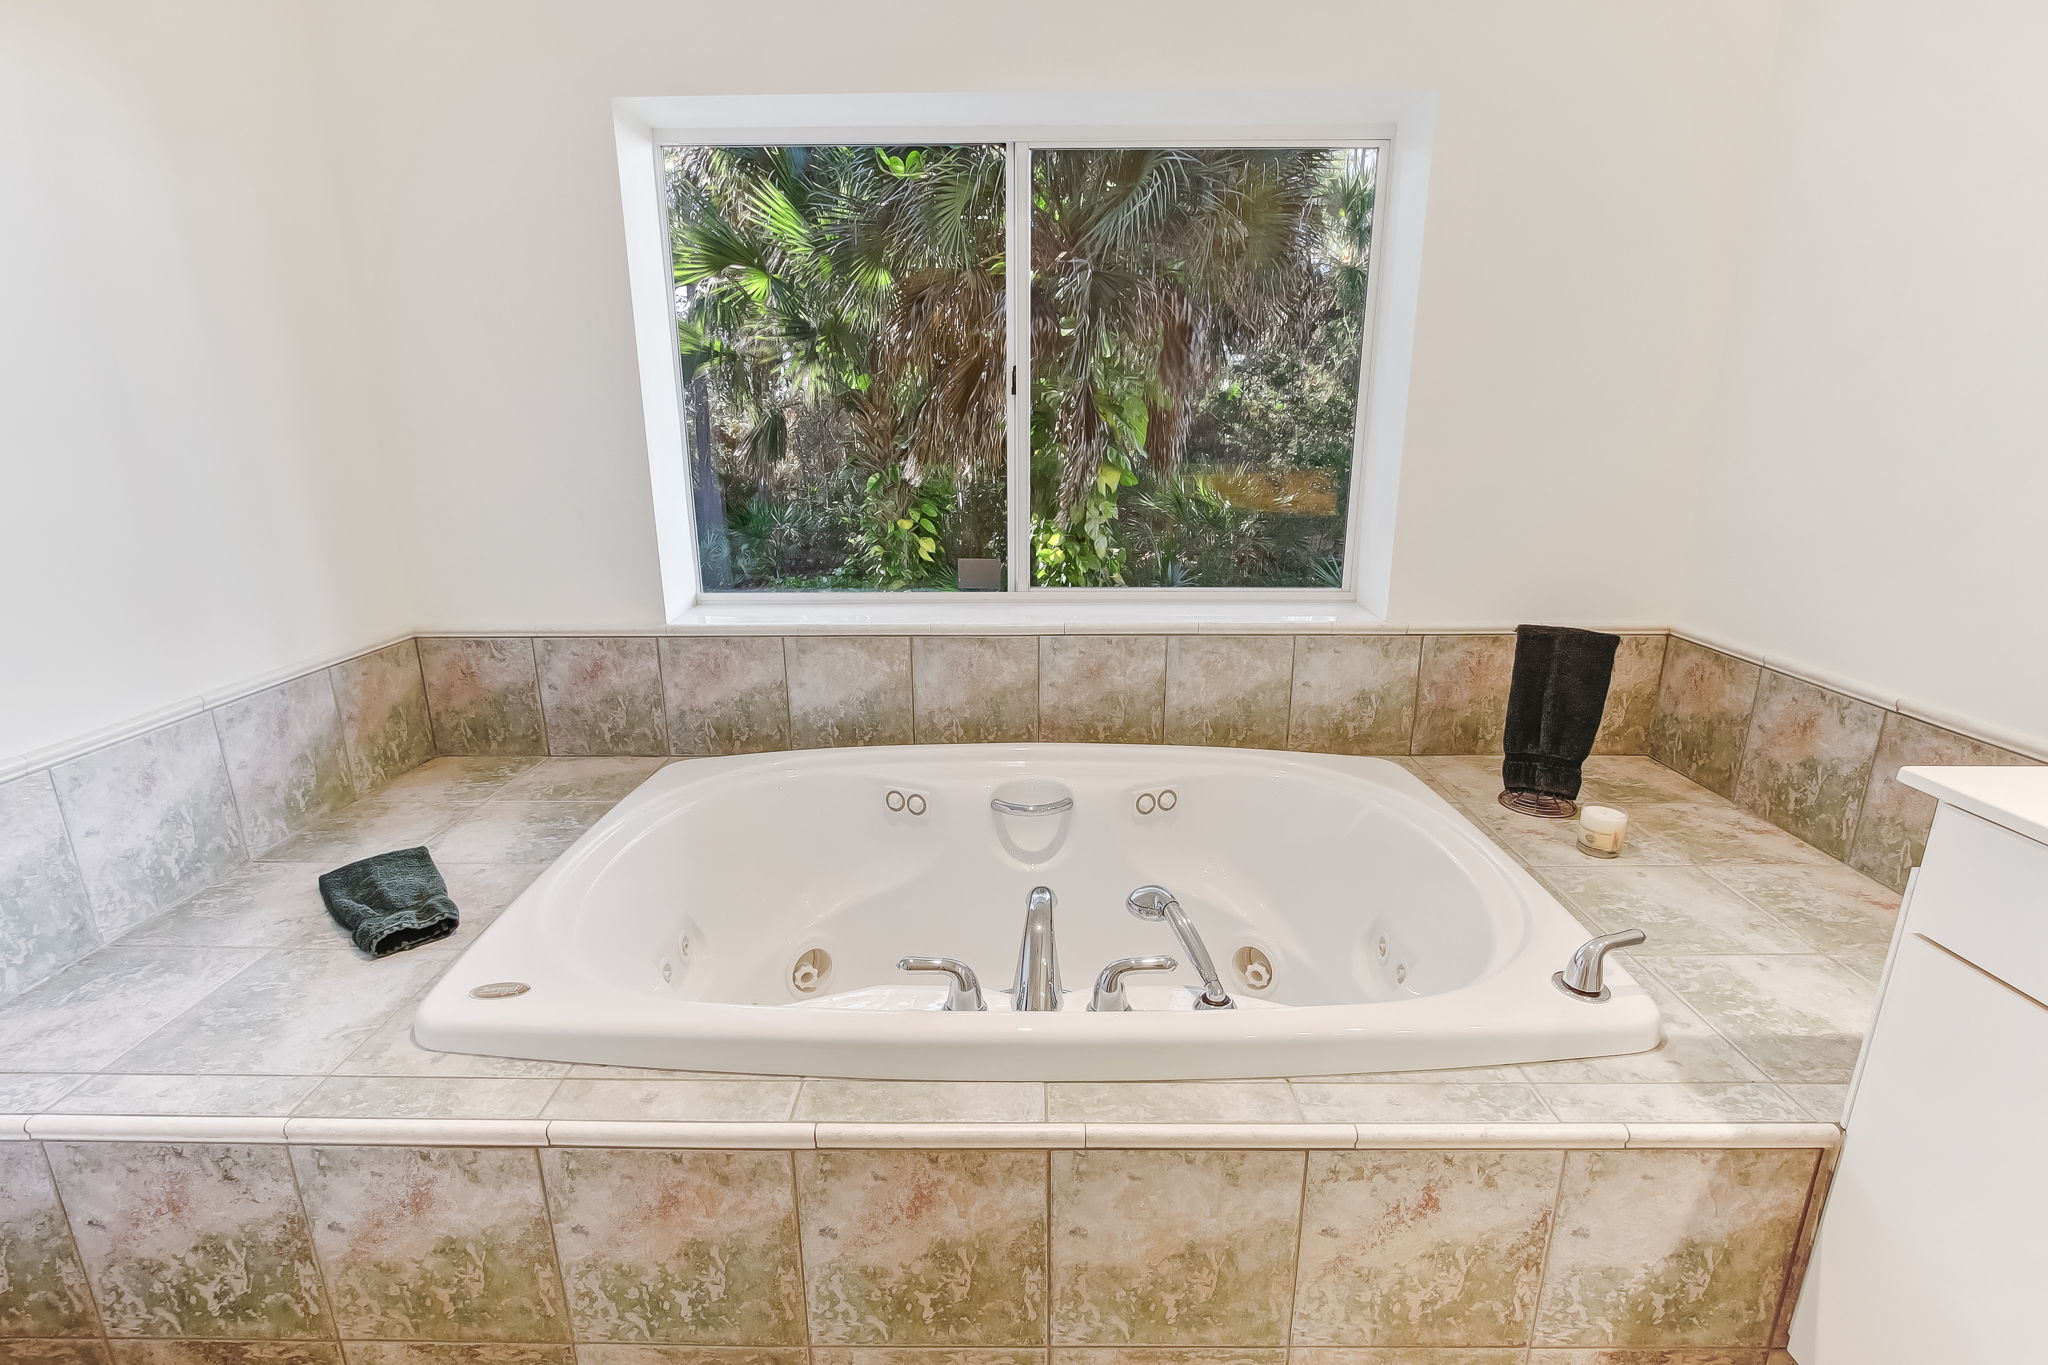 Downstairs jacuzzi tub